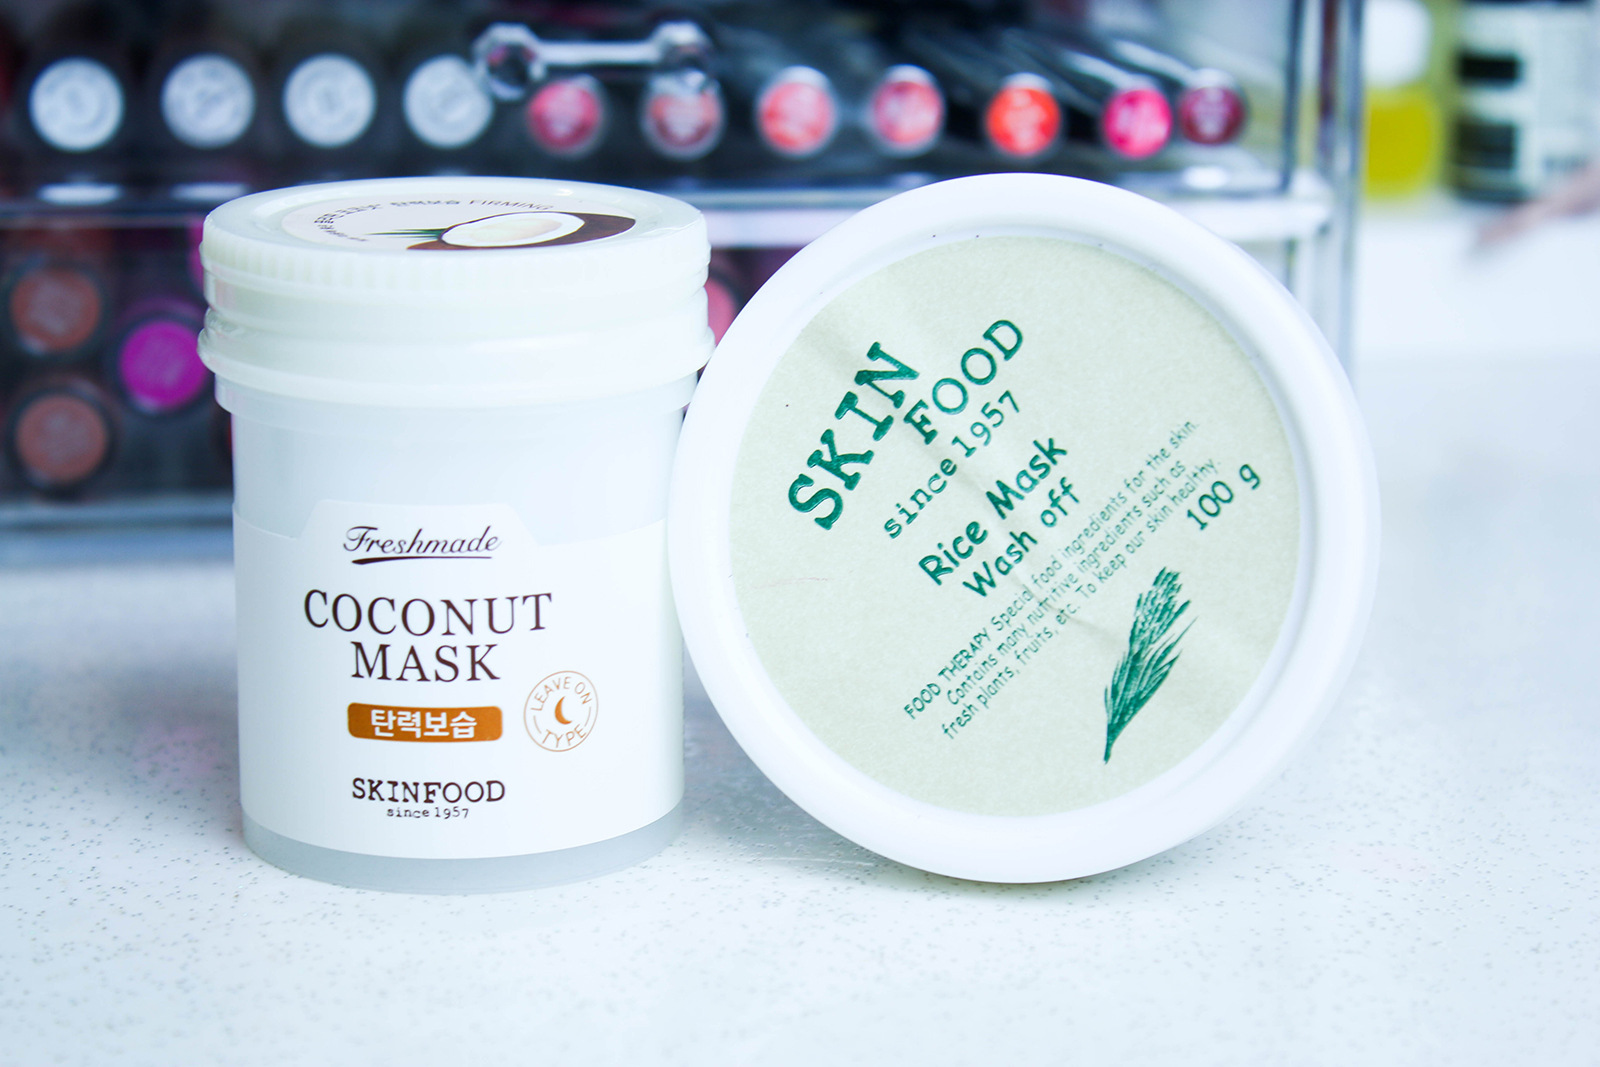 Skinfood Freshmade Coconut masque